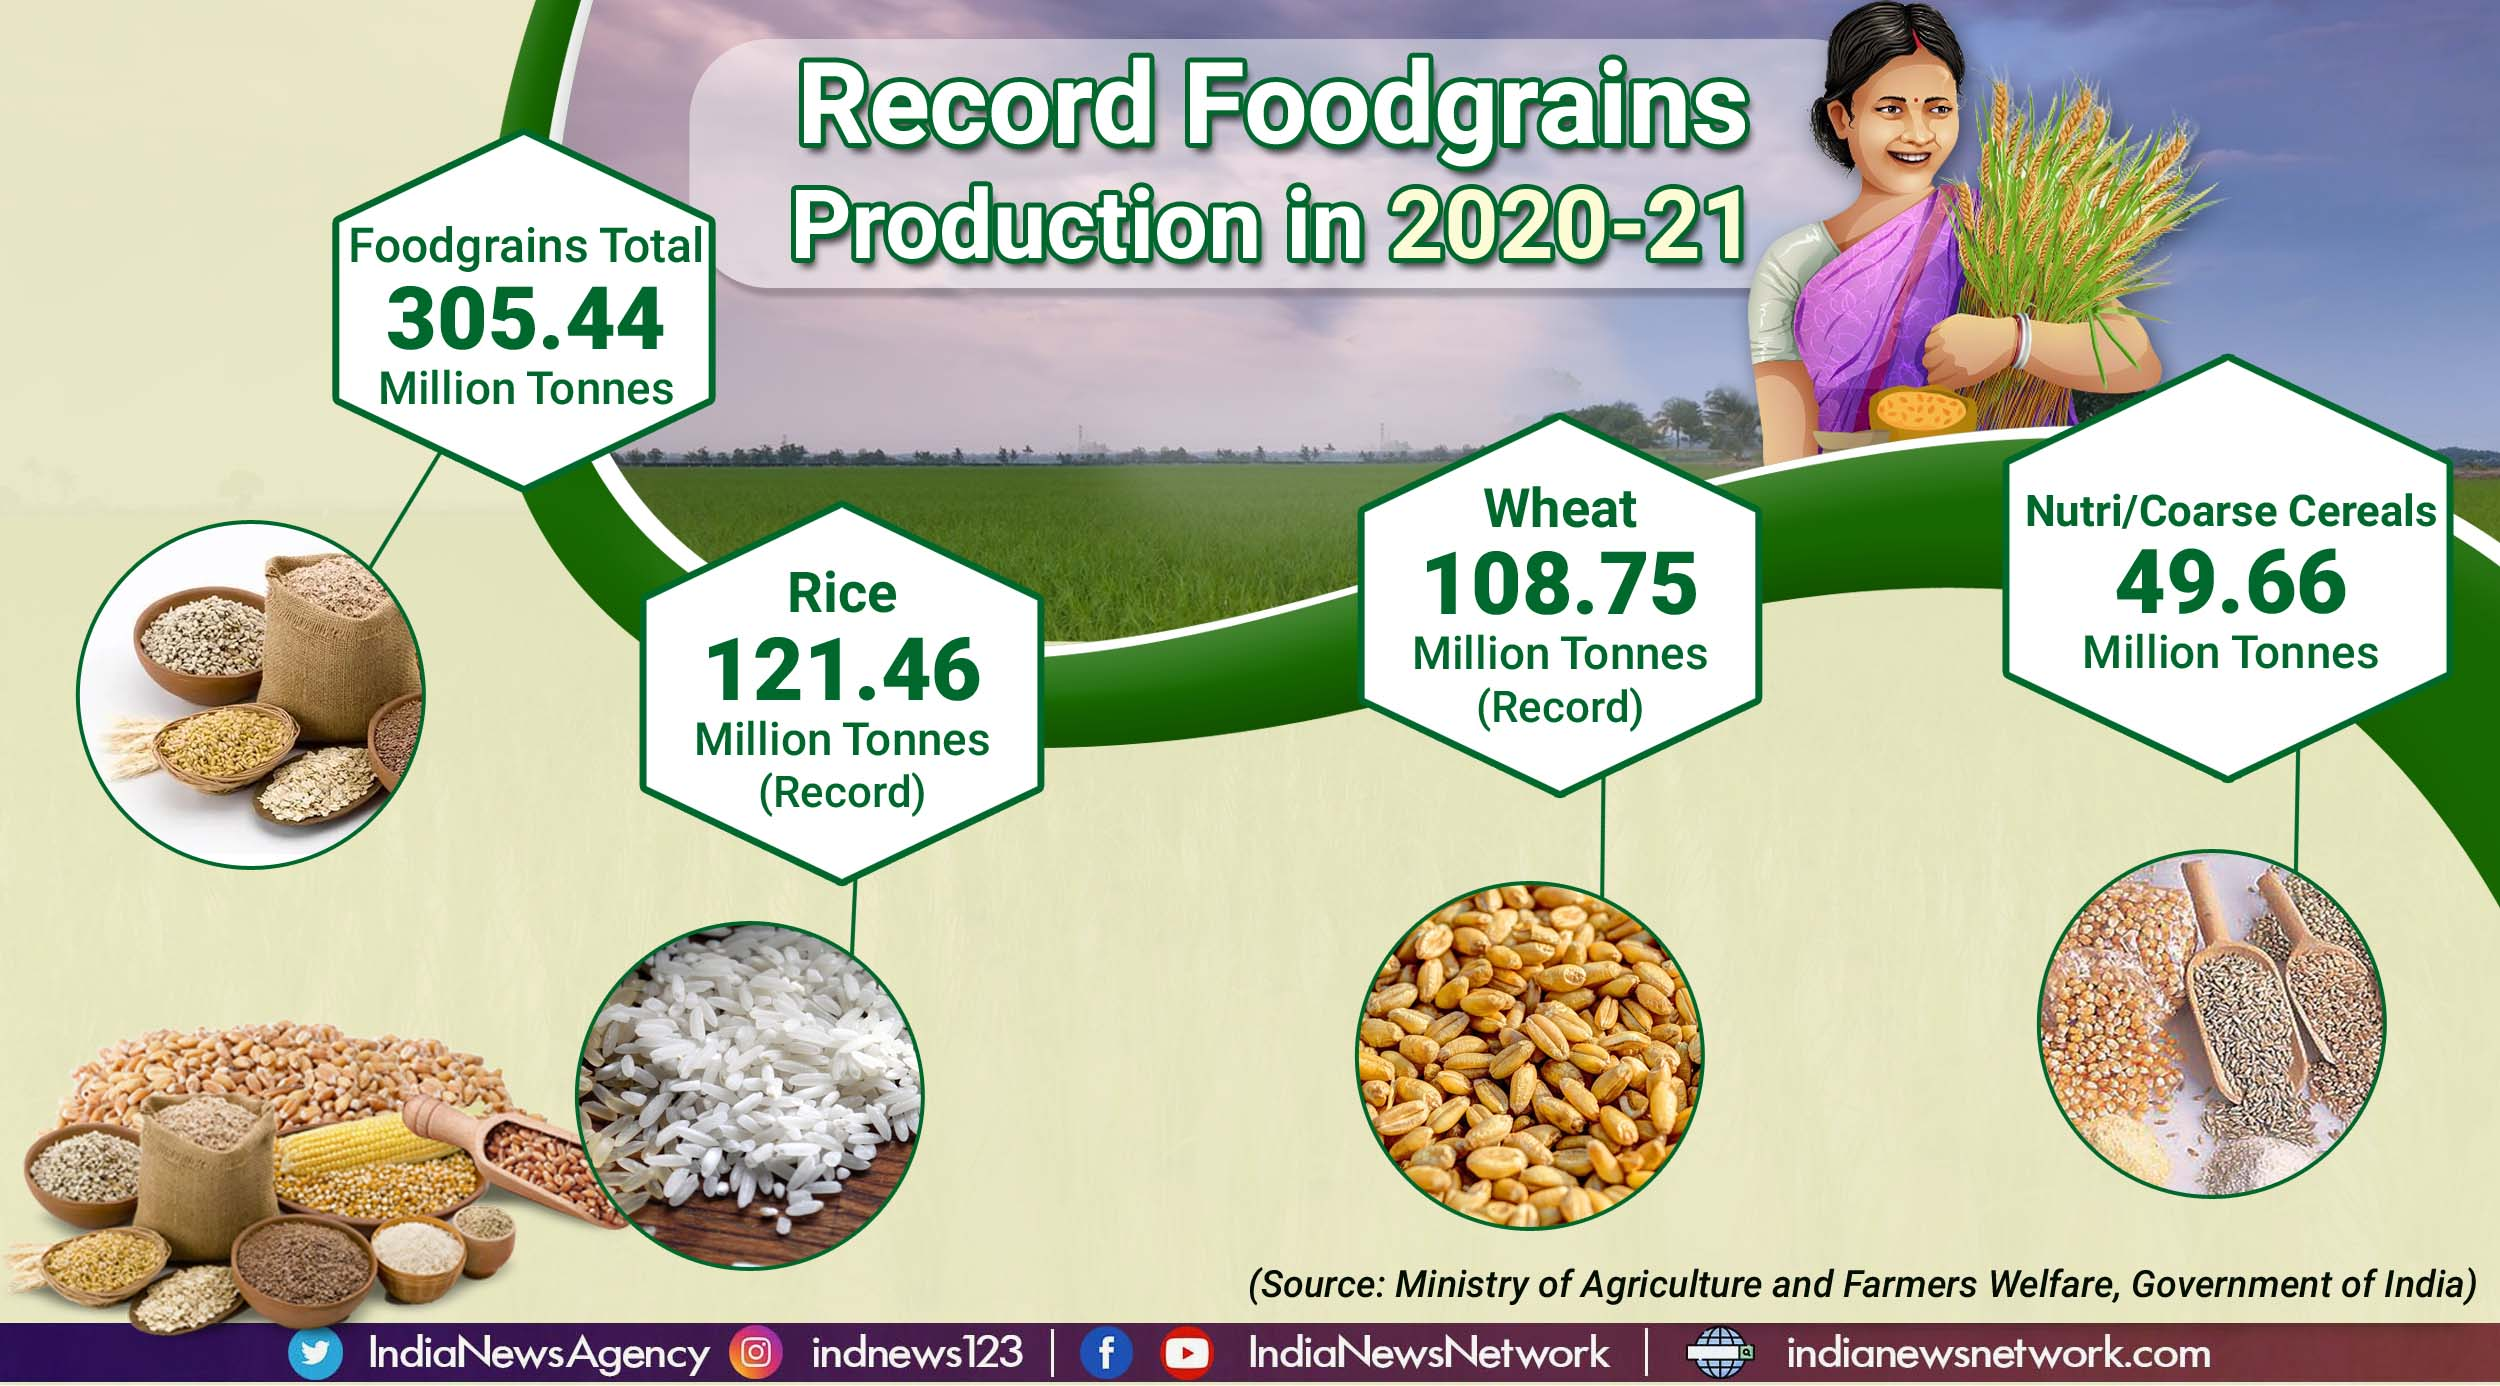 Record foodgrains production in 2020-21